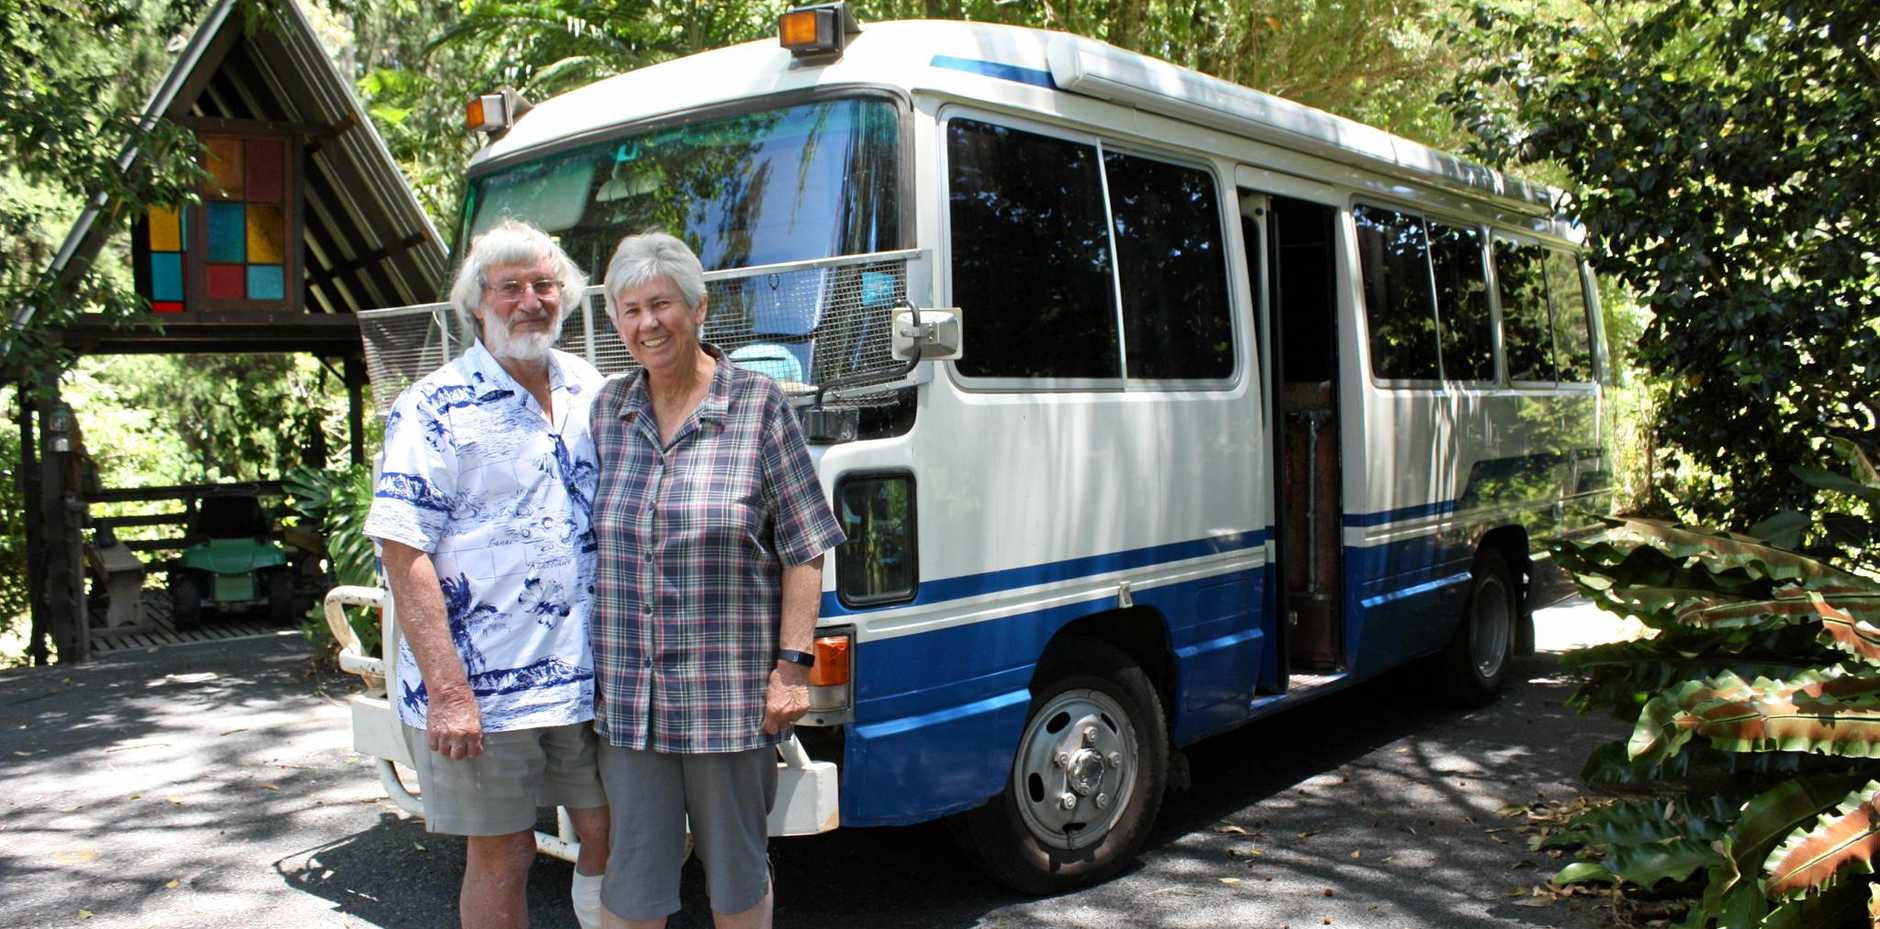 ON TOUR: Peter and Pam Fraser with their trusty motor home, a converted Coaster bus.